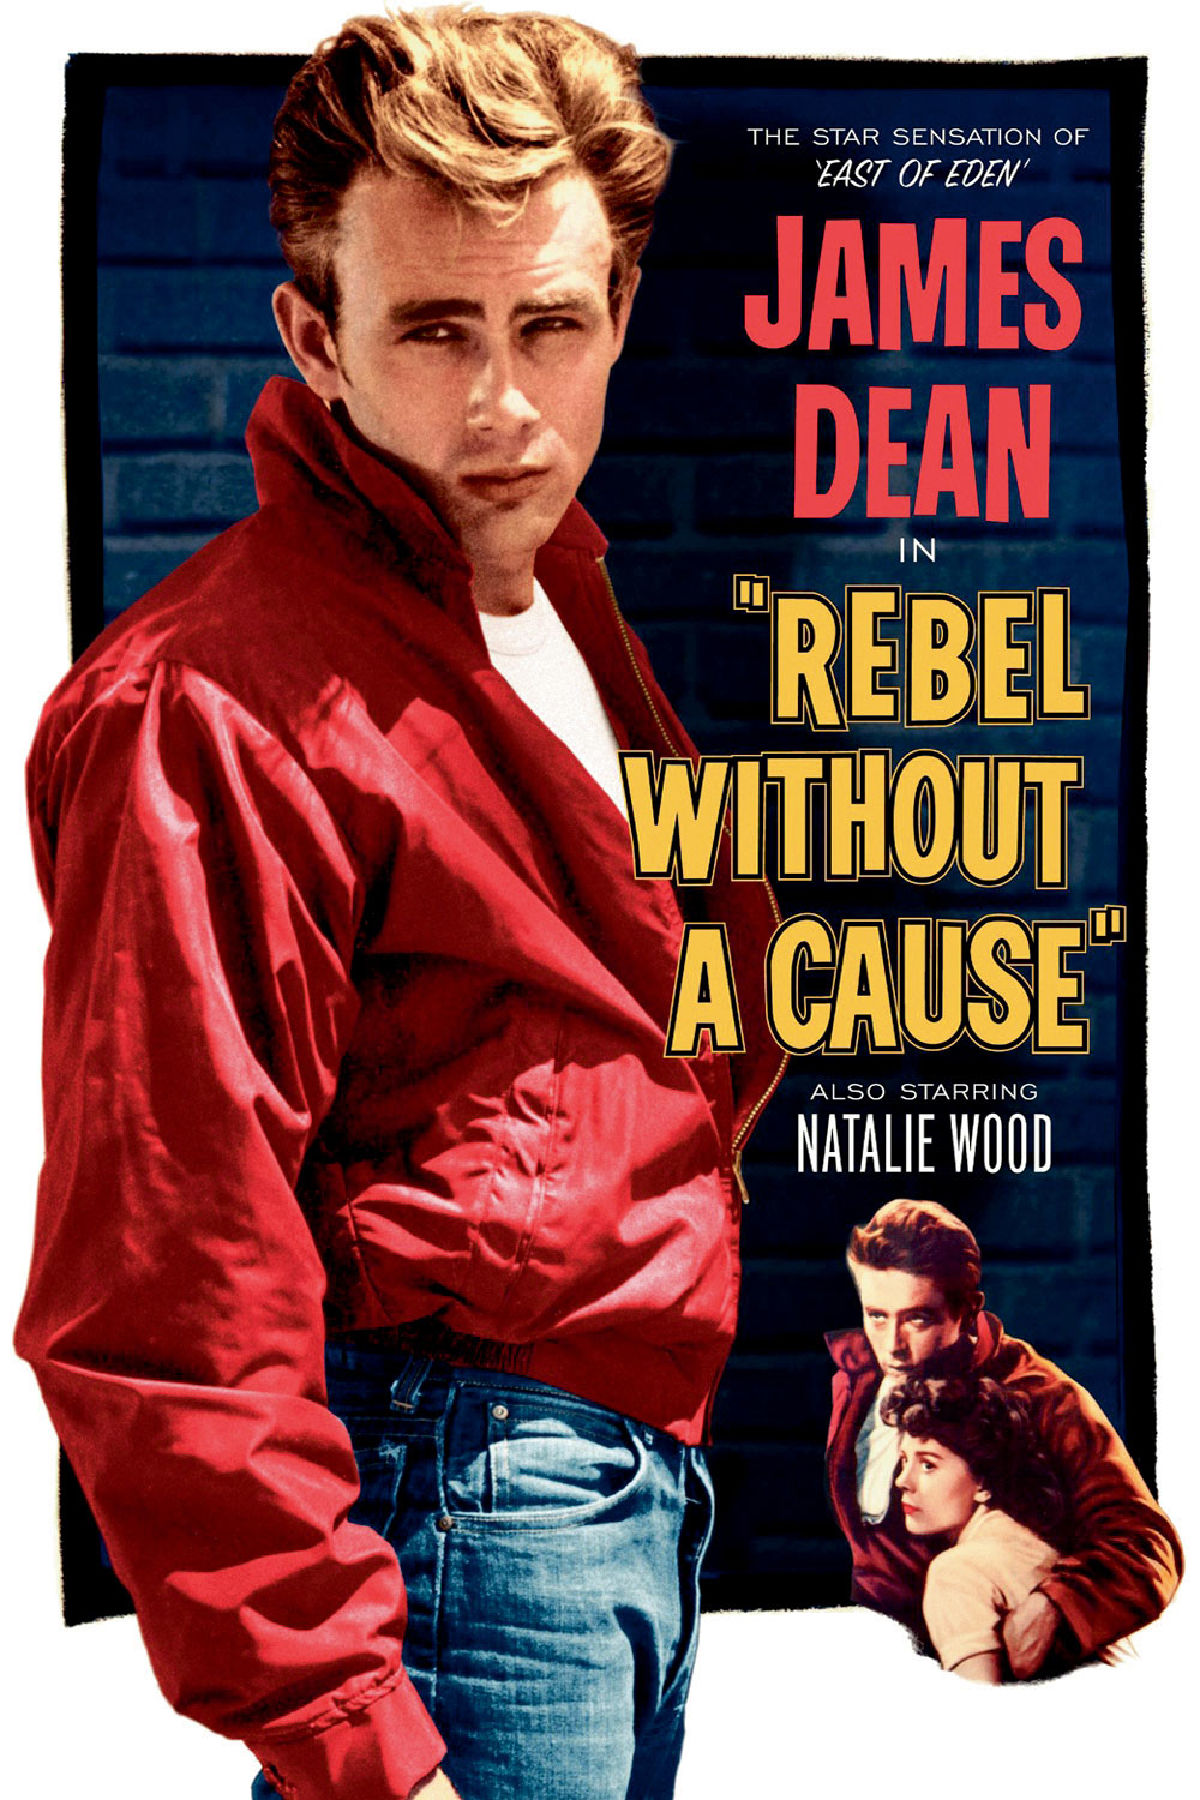 'Rebel Without A Cause' movie poster